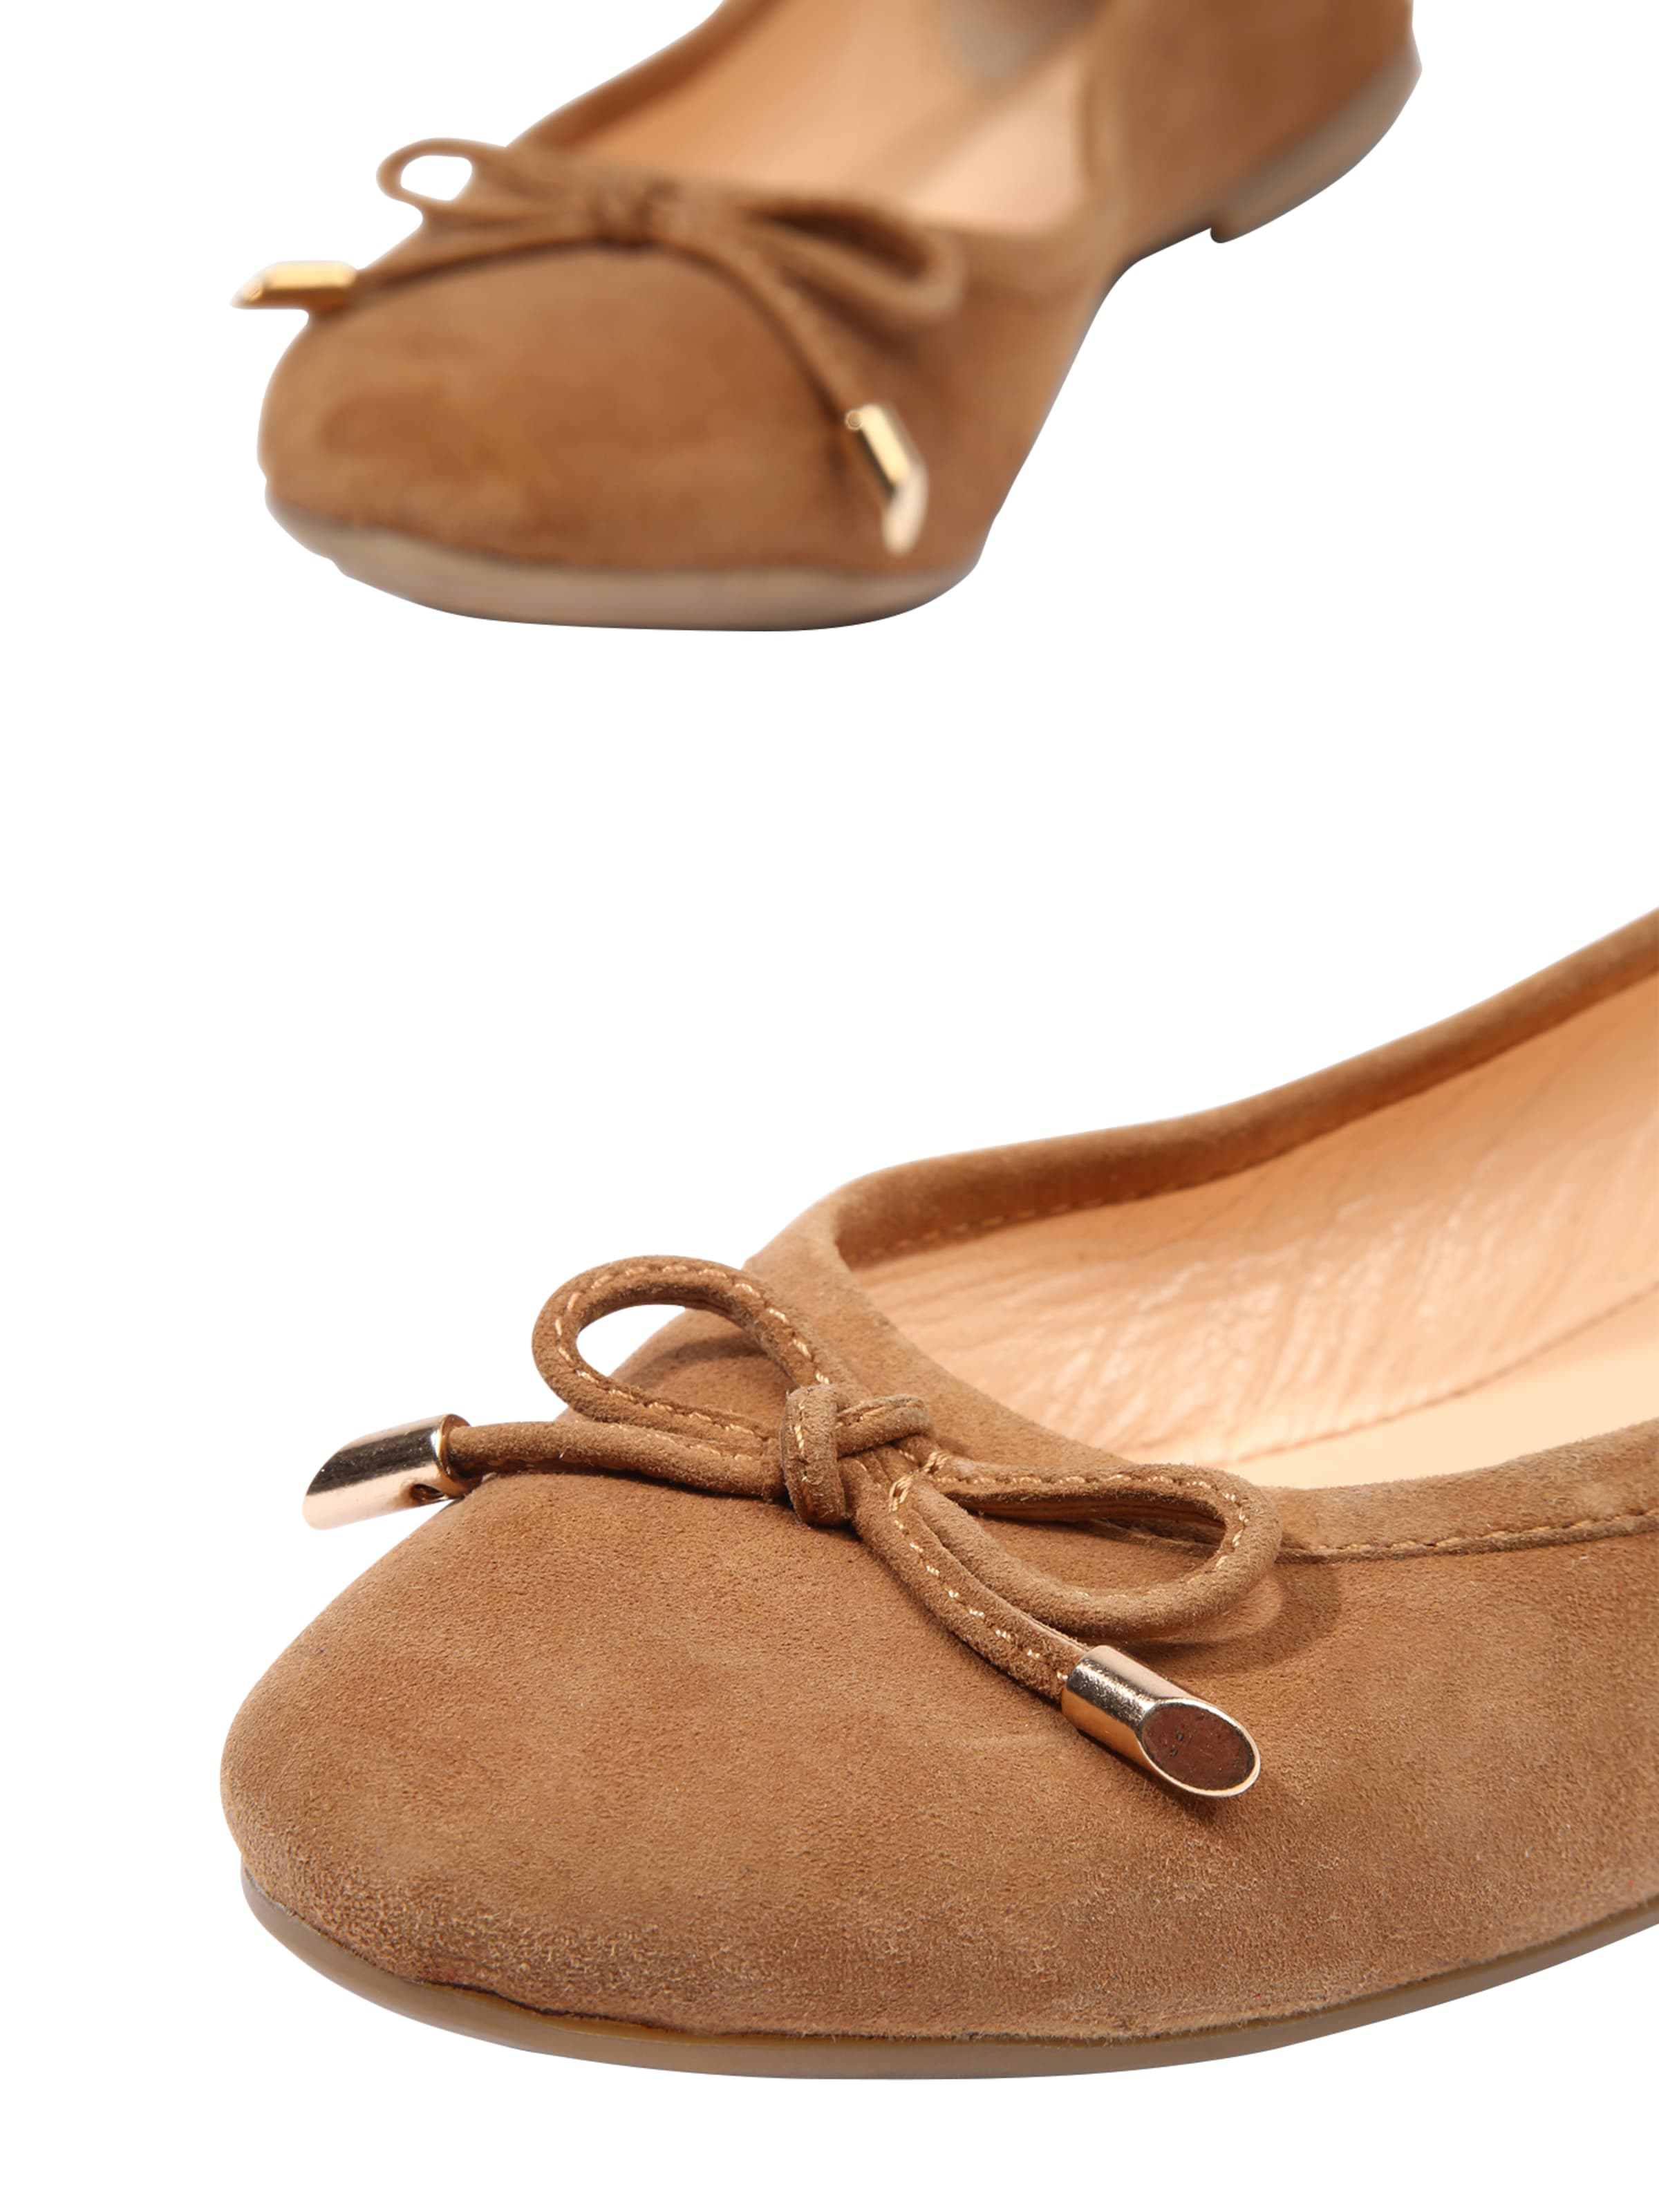 Ballerinas Braun You In About 'svea' eE2DHIb9YW